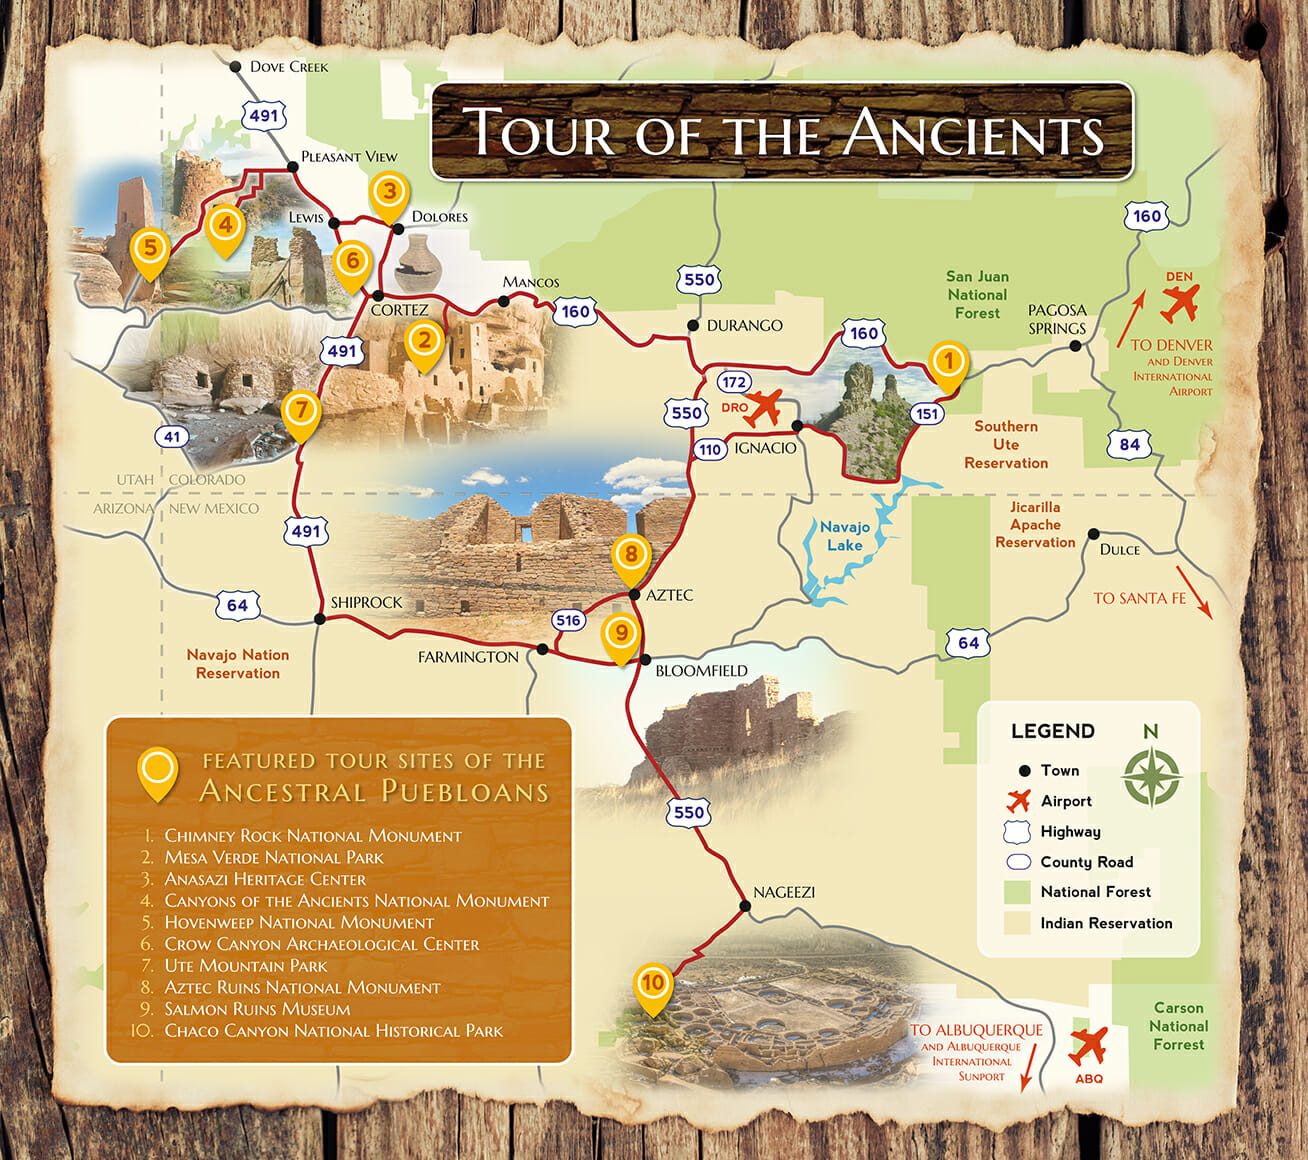 Tour of the Ancients-Where Culture Meets Adventure in the ... Map Of Ruins In Colorado on shops in colorado, military in colorado, old buildings in colorado, fountains in colorado, graveyards in colorado, stones in colorado, cliffs in colorado, woods in colorado, swamps in colorado, school in colorado, craters in colorado, architecture in colorado, ocean in colorado, church in colorado, market in colorado, battle sites in colorado, rainbow in colorado, labyrinths in colorado, abandoned structures in colorado, empire in colorado,